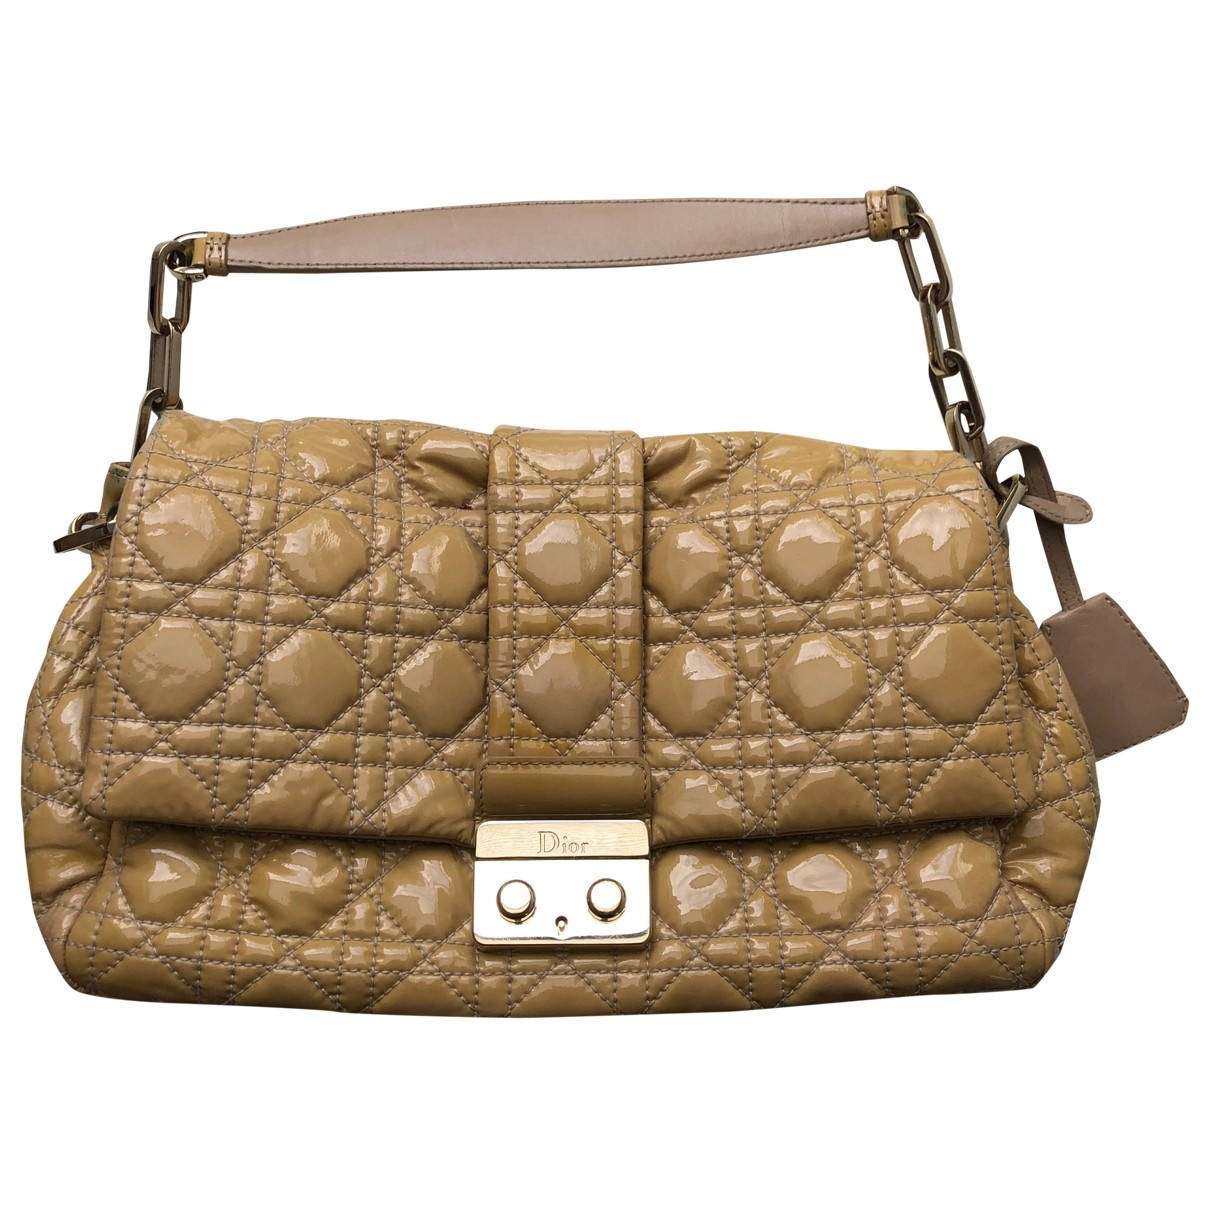 Dior New Lock  Beige Patent leather handbag for Women \N